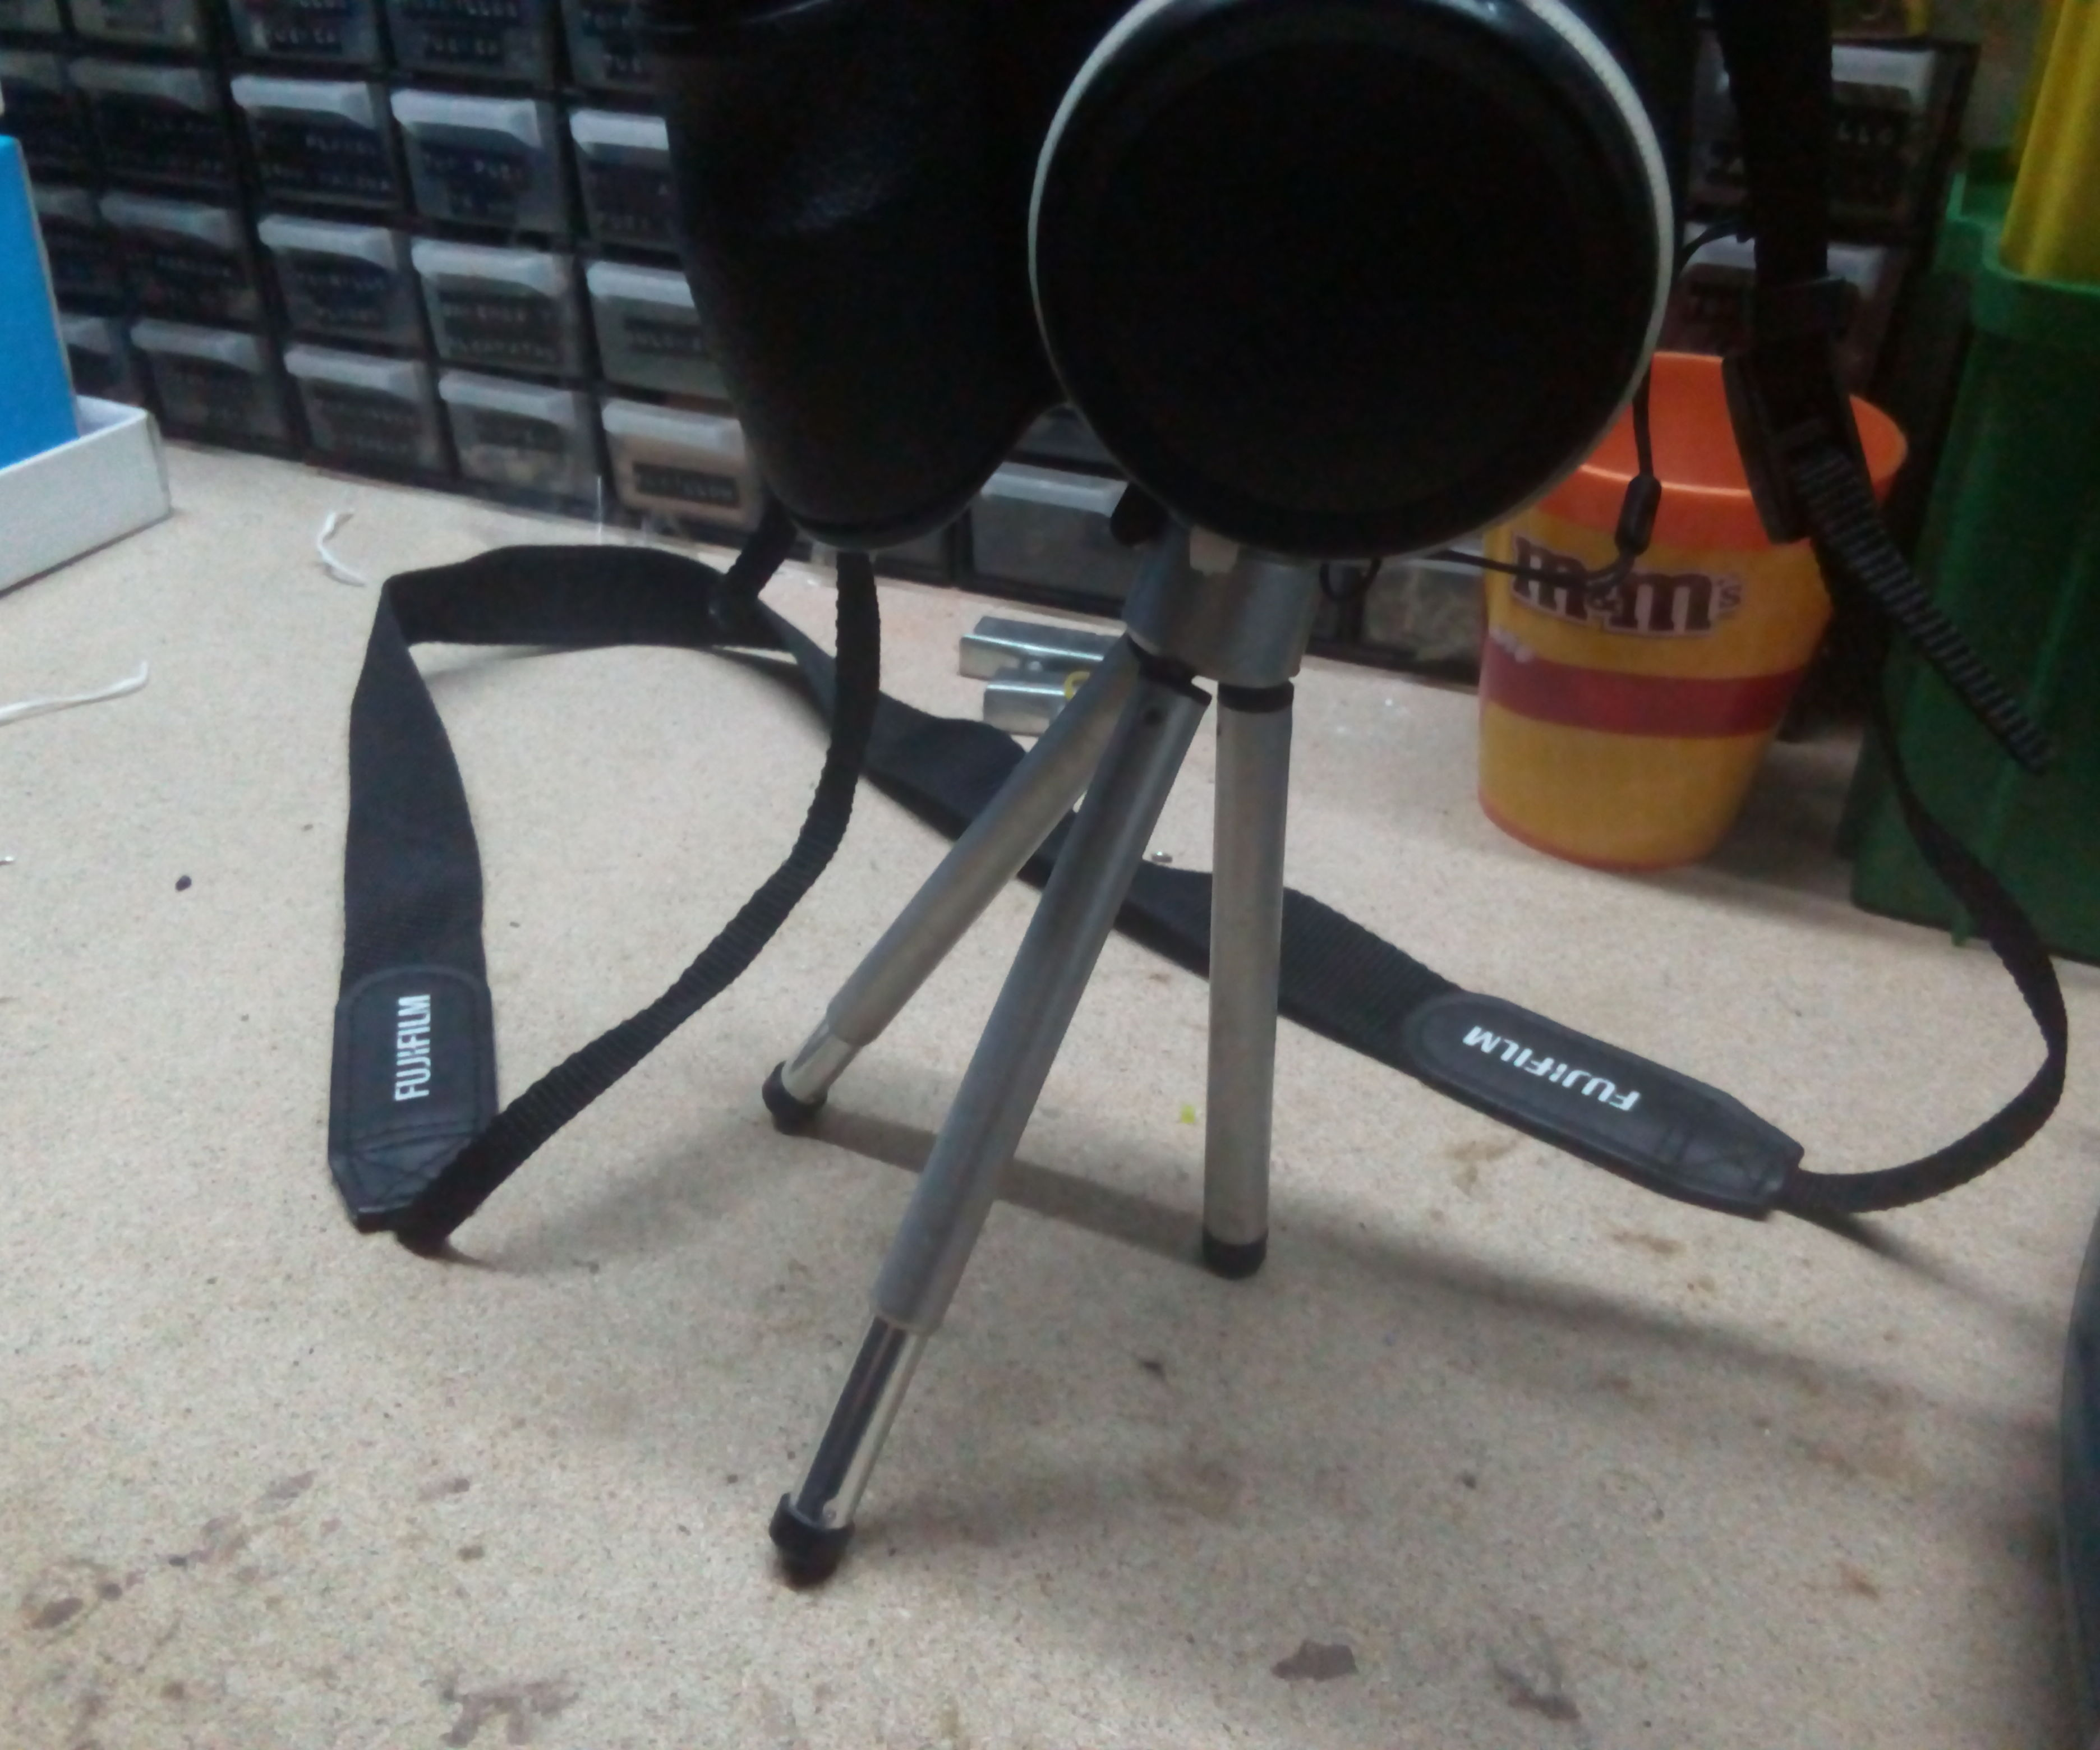 Redneck recycling and fix for free loosy tripod legs